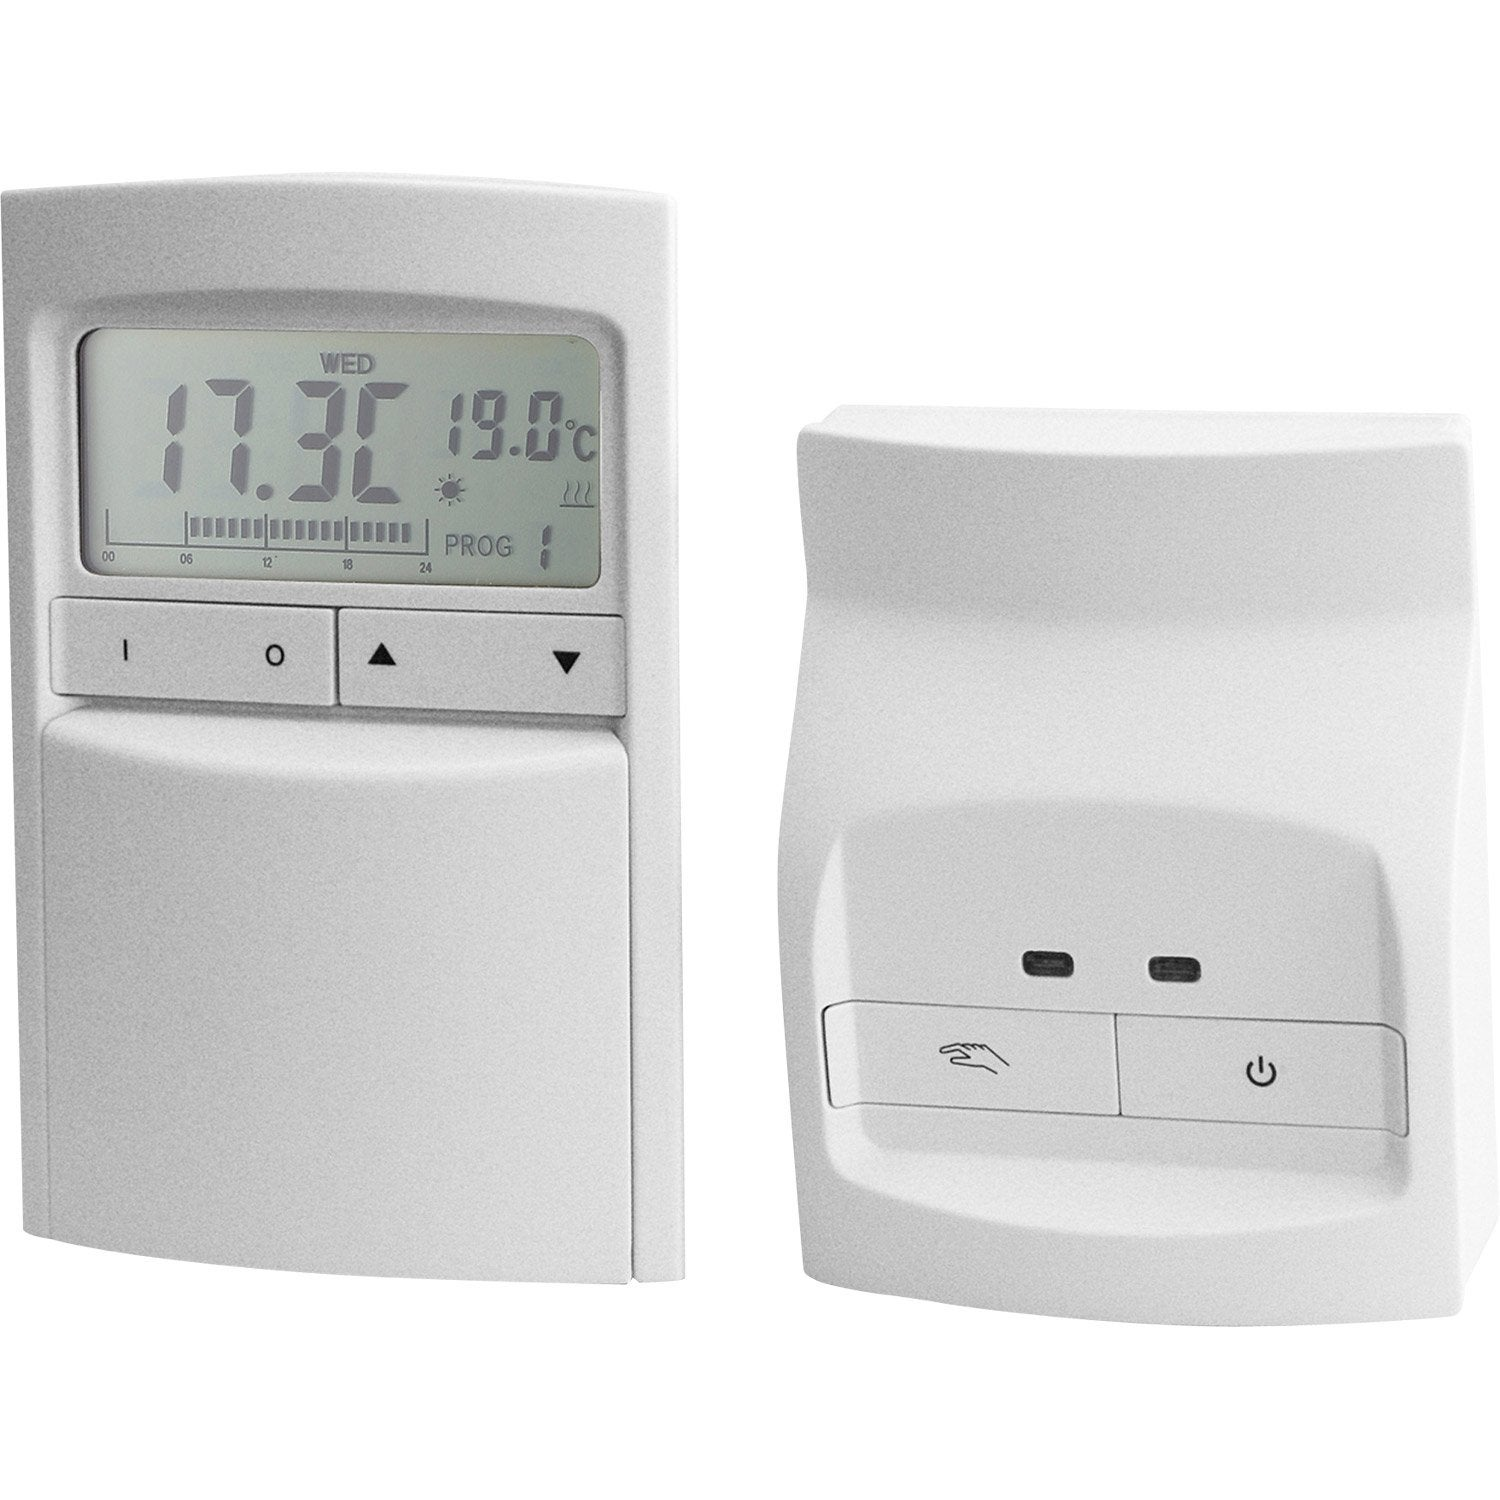 thermostat sans fil pour chaudiere gaz good thermostat. Black Bedroom Furniture Sets. Home Design Ideas